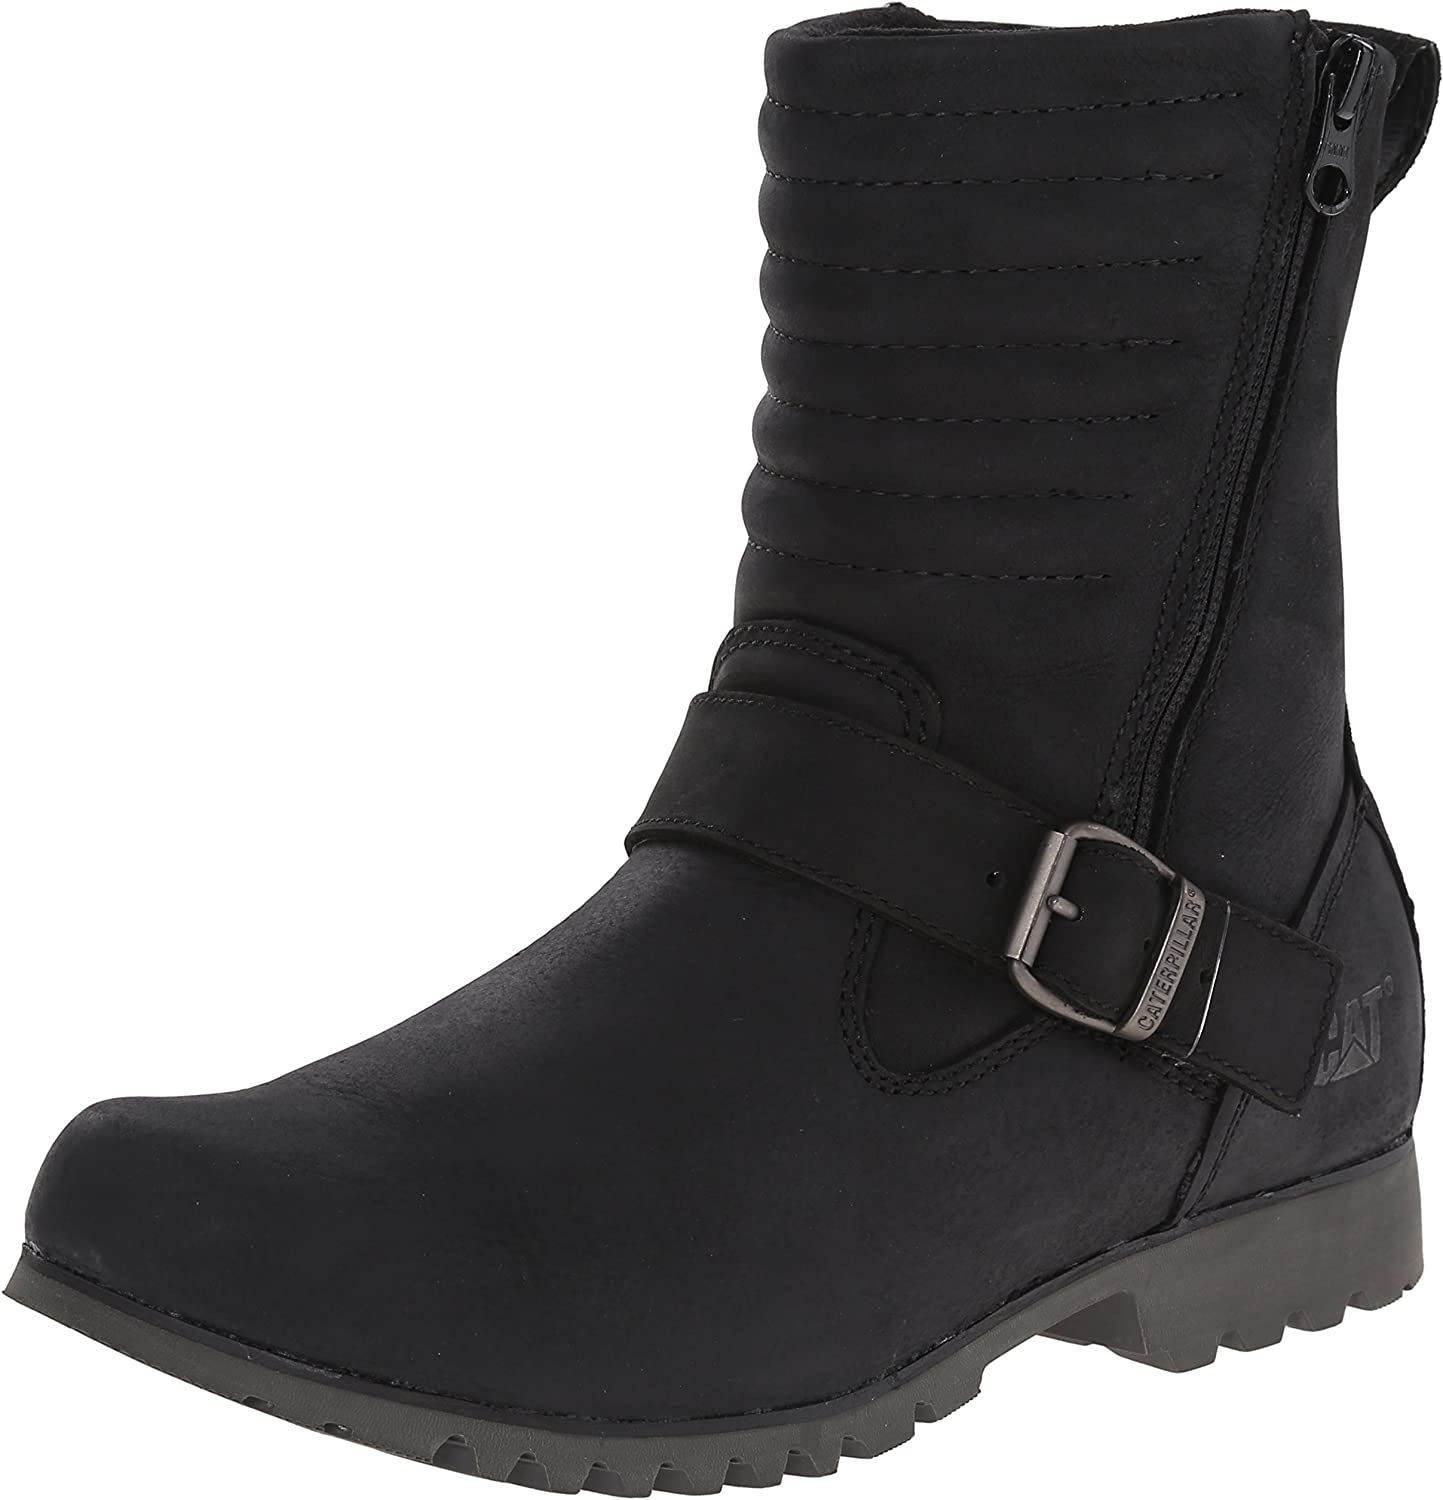 CAT Footwear Caterpillar Women's Darcy Waterproof Motorcycle Boot